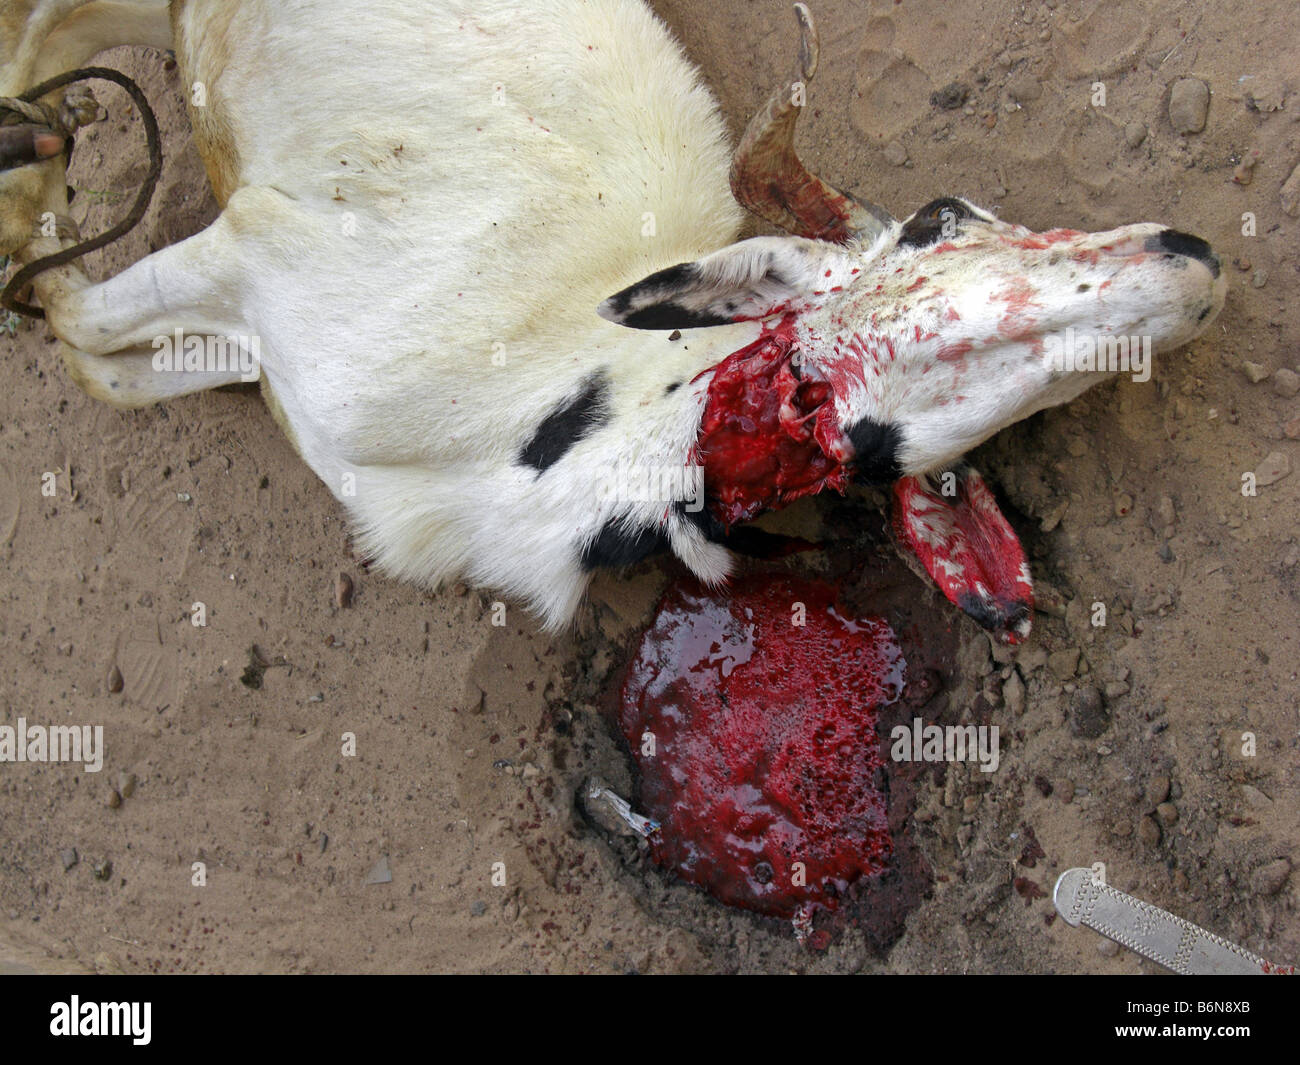 Tabaski or Eid Al Adha. The slaughter of a goat in a